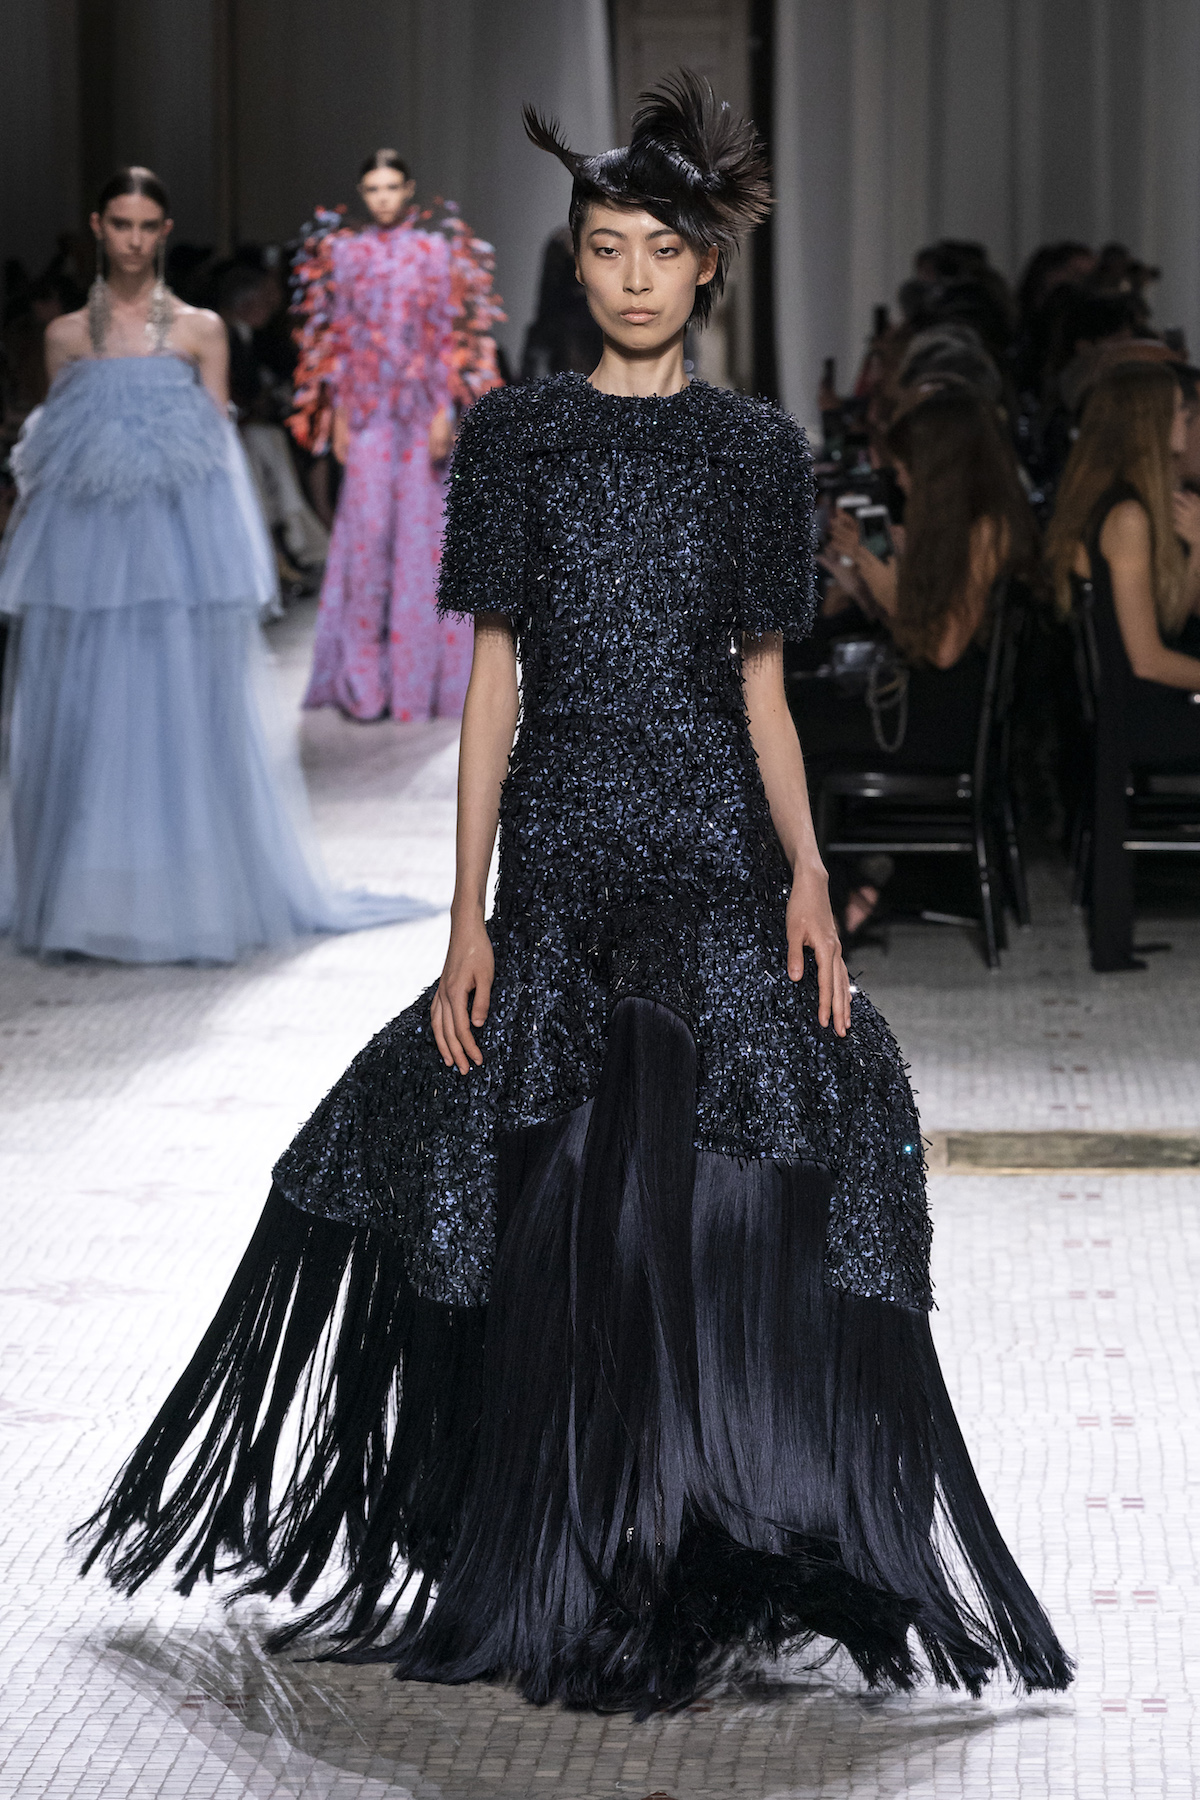 Givenchy Haute Couture Fall Winter 2019 (Look 32).jpg